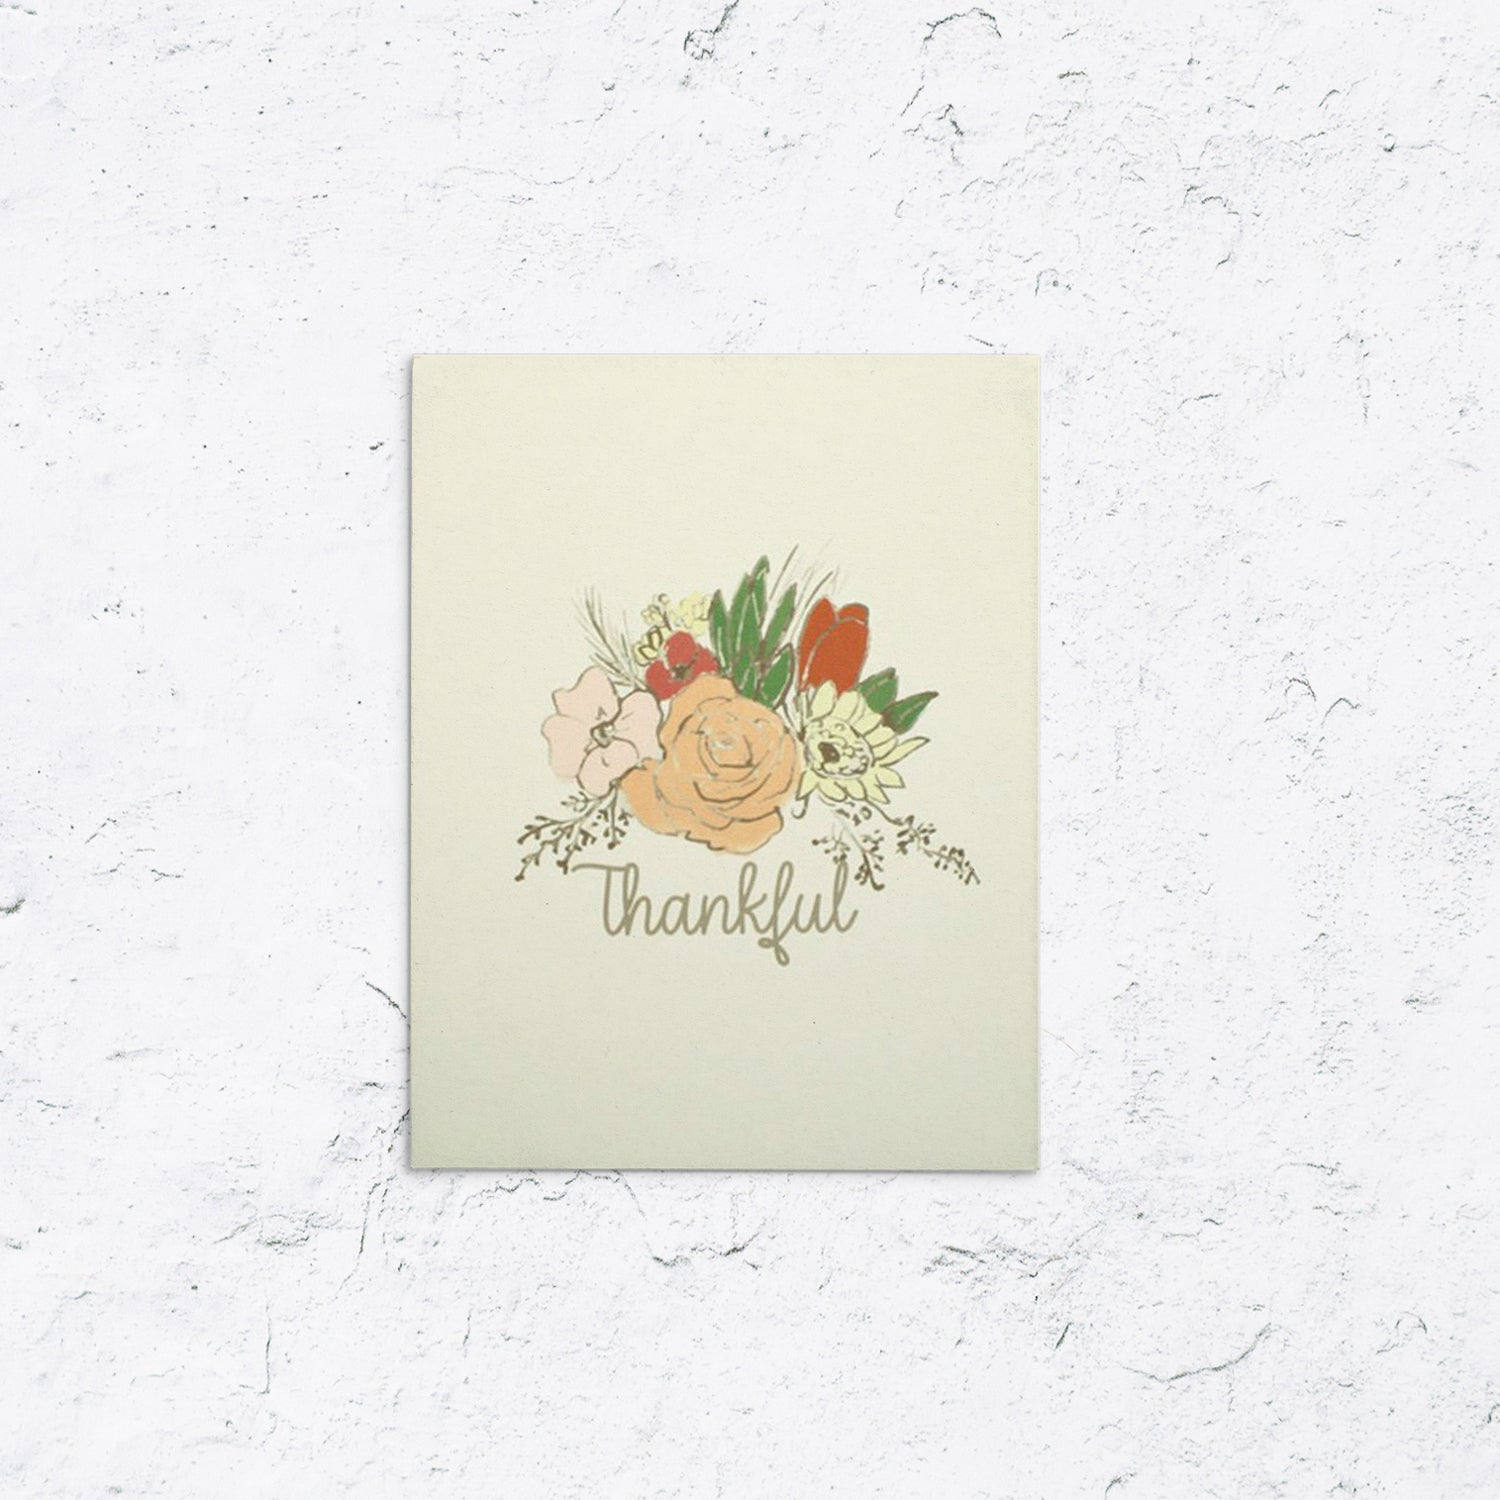 Autumn Wreath Thankful Greeting Card